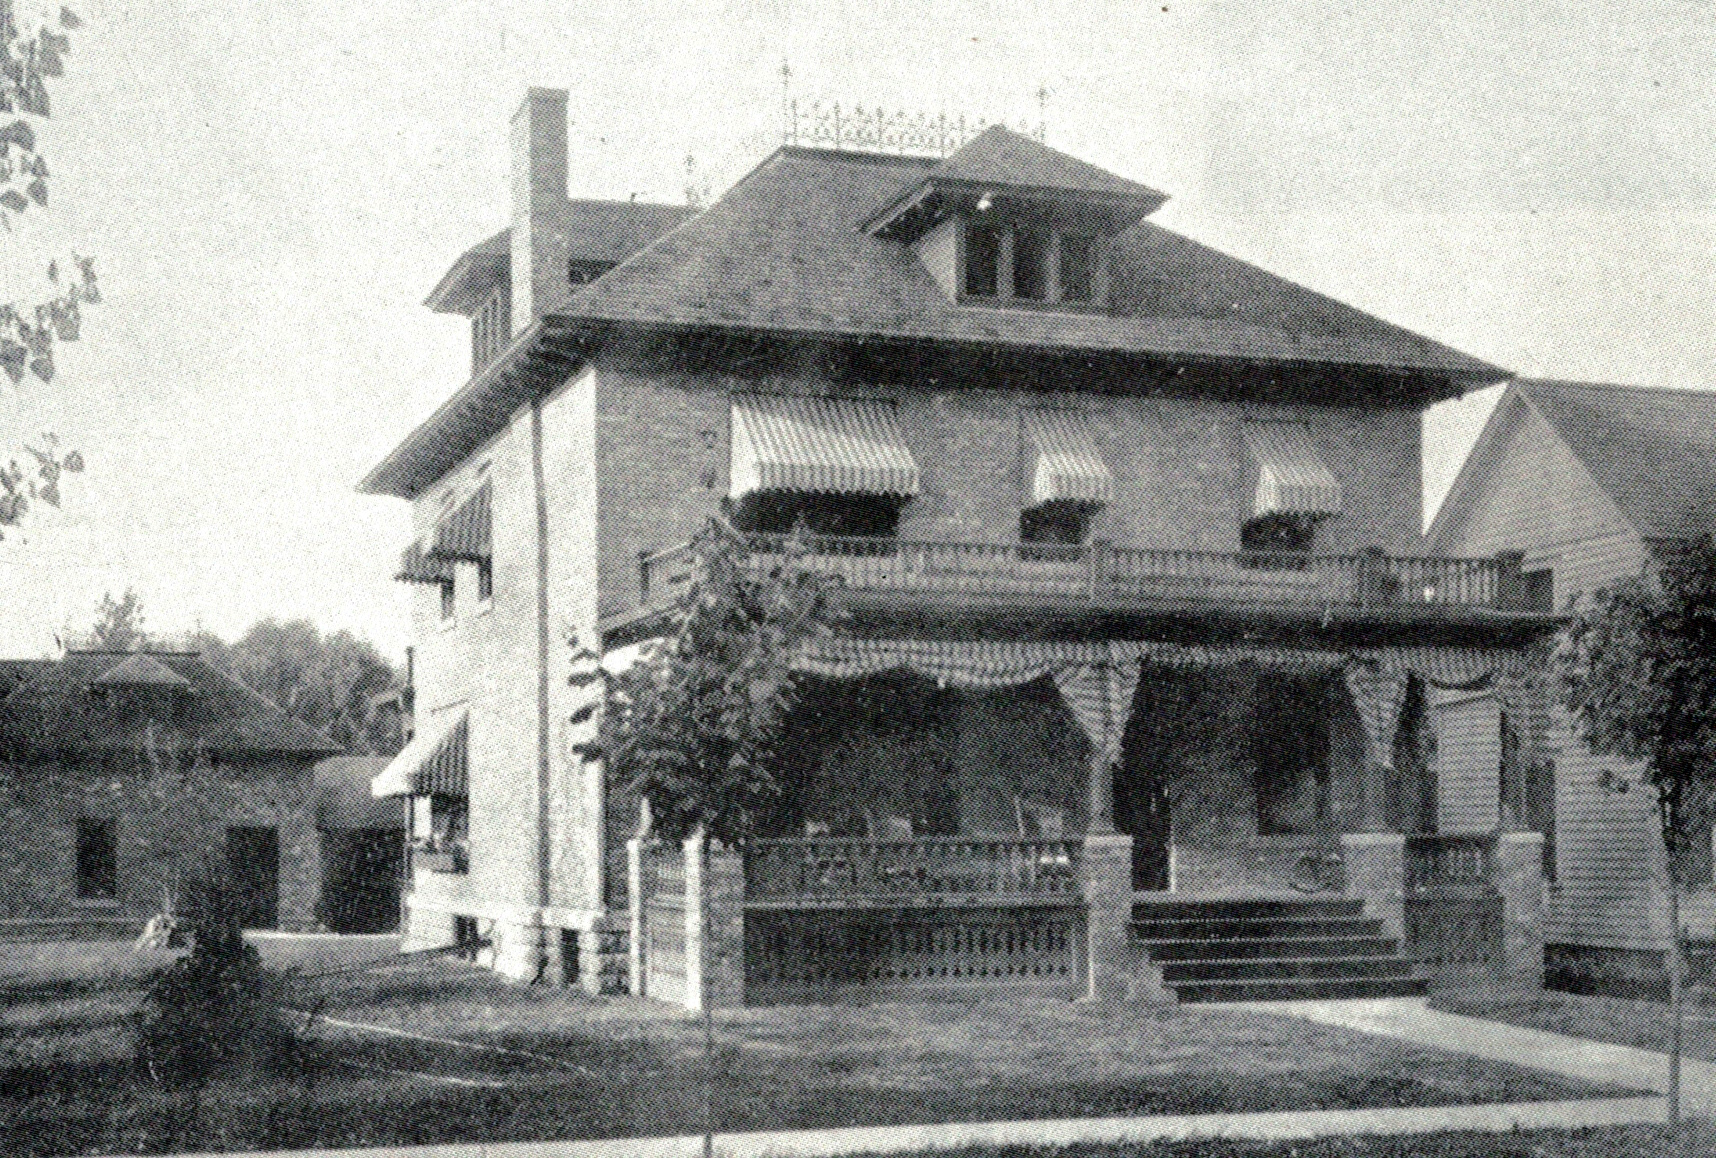 Clinton George Griffey House, west and south elevations, 1907